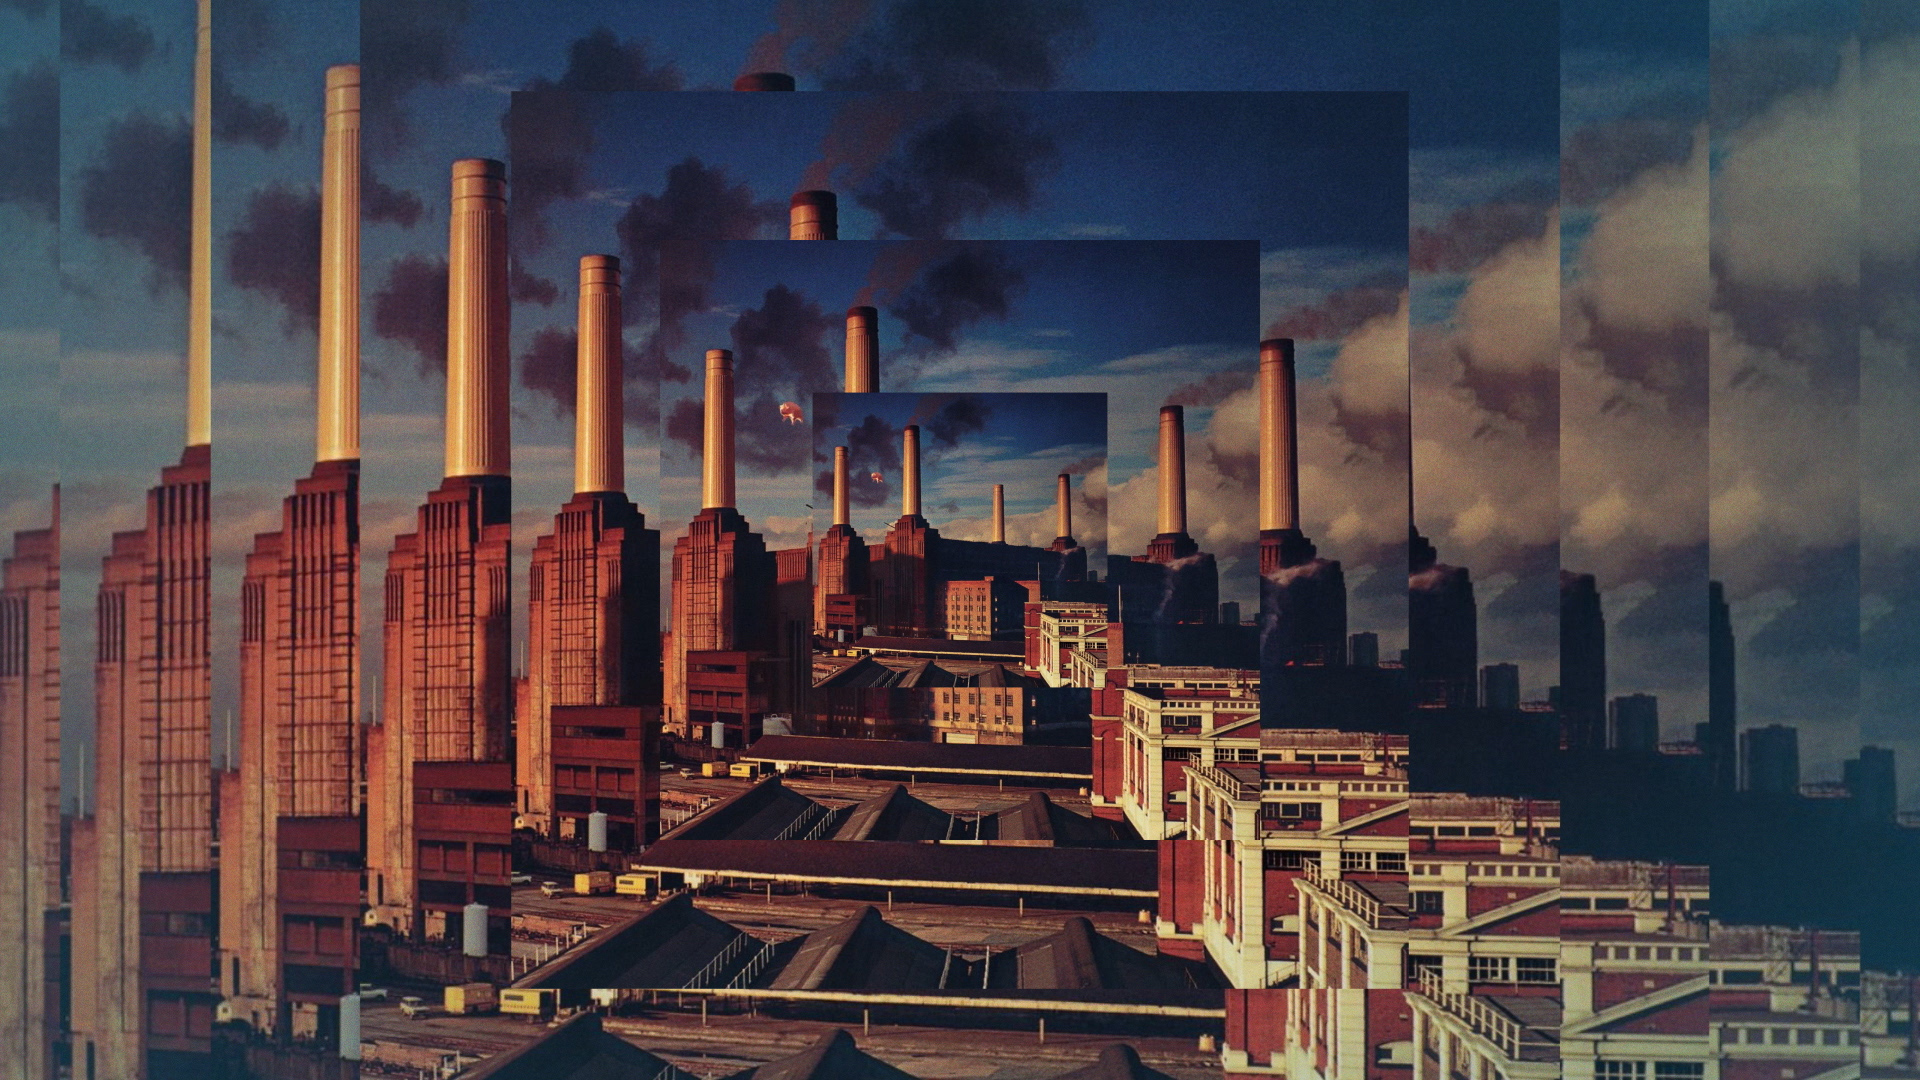 Psychedelic Wallpaper Hd Roger Waters Us Them Tour The Ether